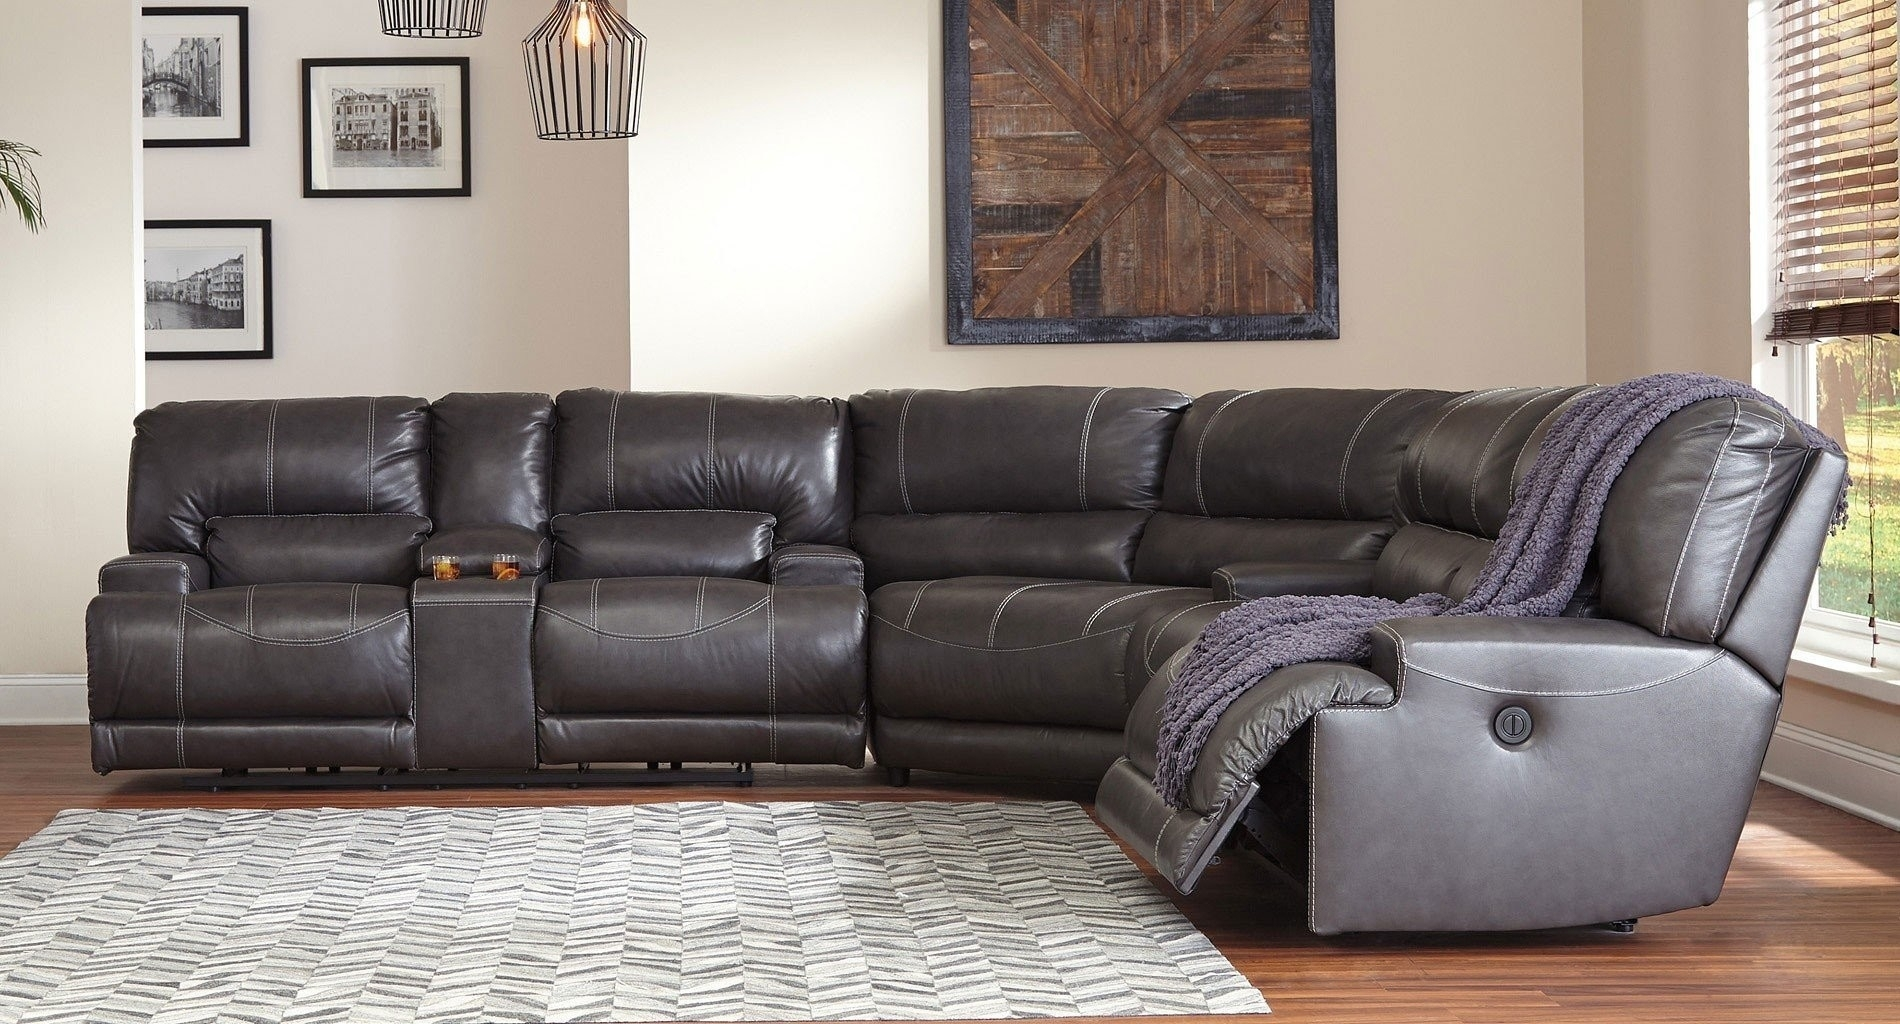 Grey Leather Reclining Sectional Clyde 3 Piece Power W Pwr Hdrst For Clyde Grey Leather 3 Piece Power Reclining Sectionals With Pwr Hdrst & Usb (Image 9 of 25)